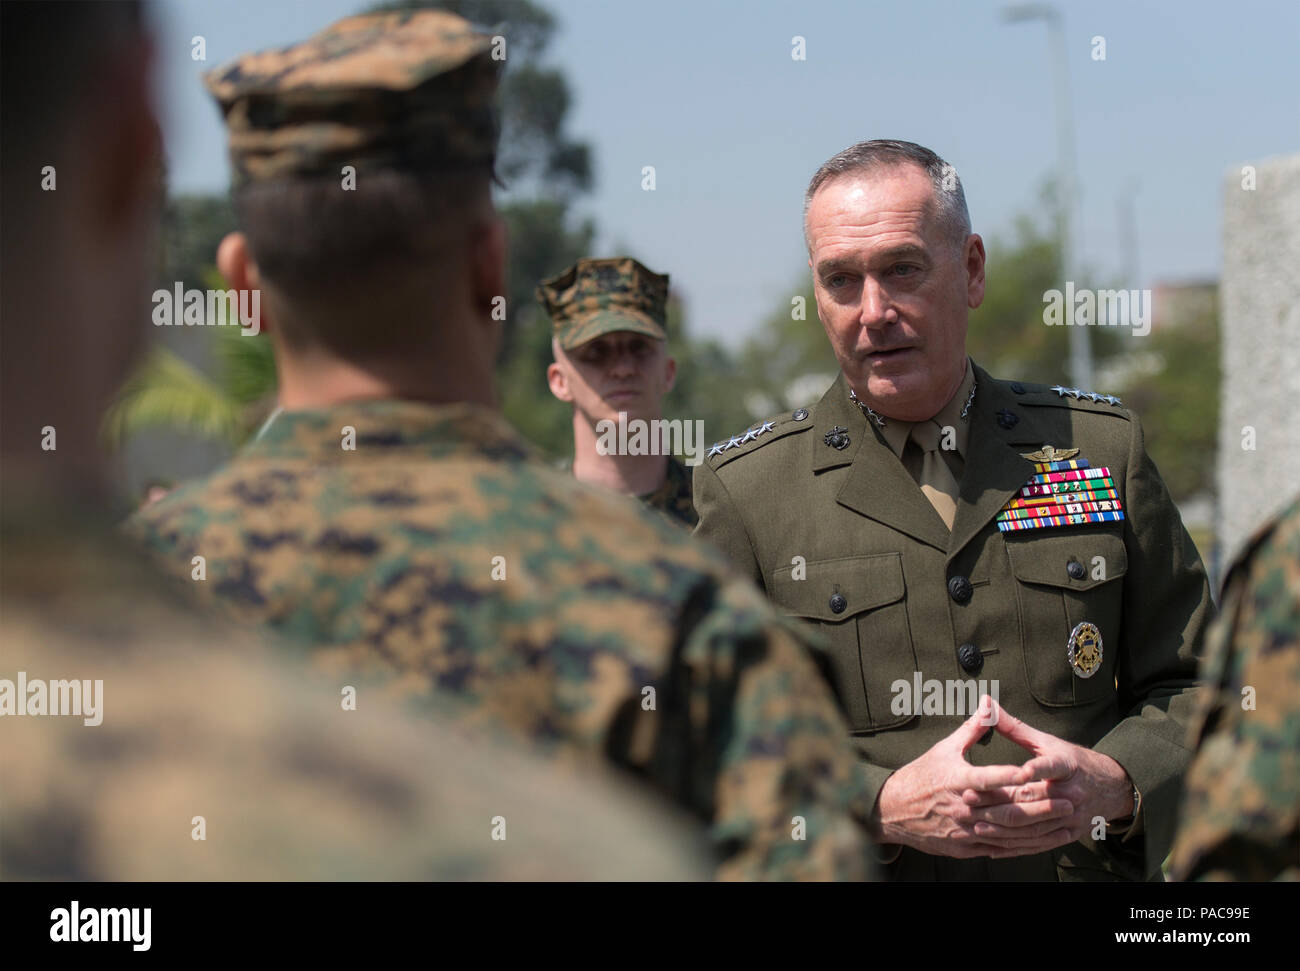 U.S. Marine Gen. Joseph F. Dunford Jr., chairman of the Joint Chiefs of Staff, meets with Marines assigned to the Marine Security Detachment at the U.S. Embassy in Bogota, Colombia, March. 10, 2016. Dunford met with senior U.S. and Colombian military and civilian leaders for his first visit to Colombia as Chairman. (DoD Photo by Navy Petty Officer 2nd Class Dominique A. Pineiro) - Stock Image